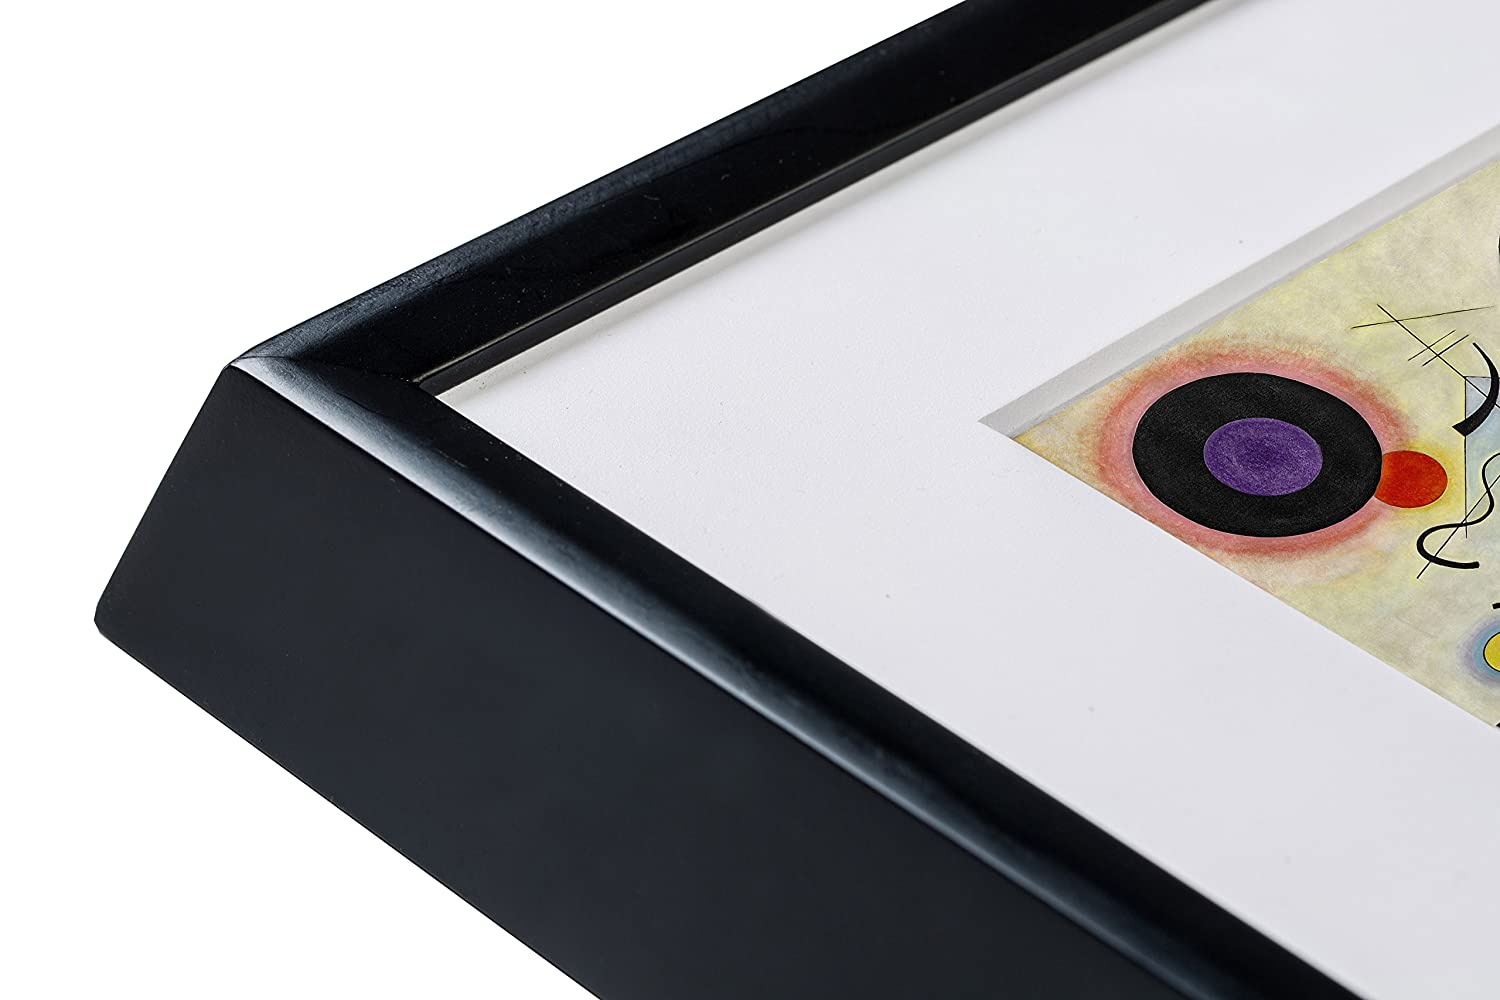 Best Digital Art Display in 2020: Reviews and Buying Guide 4